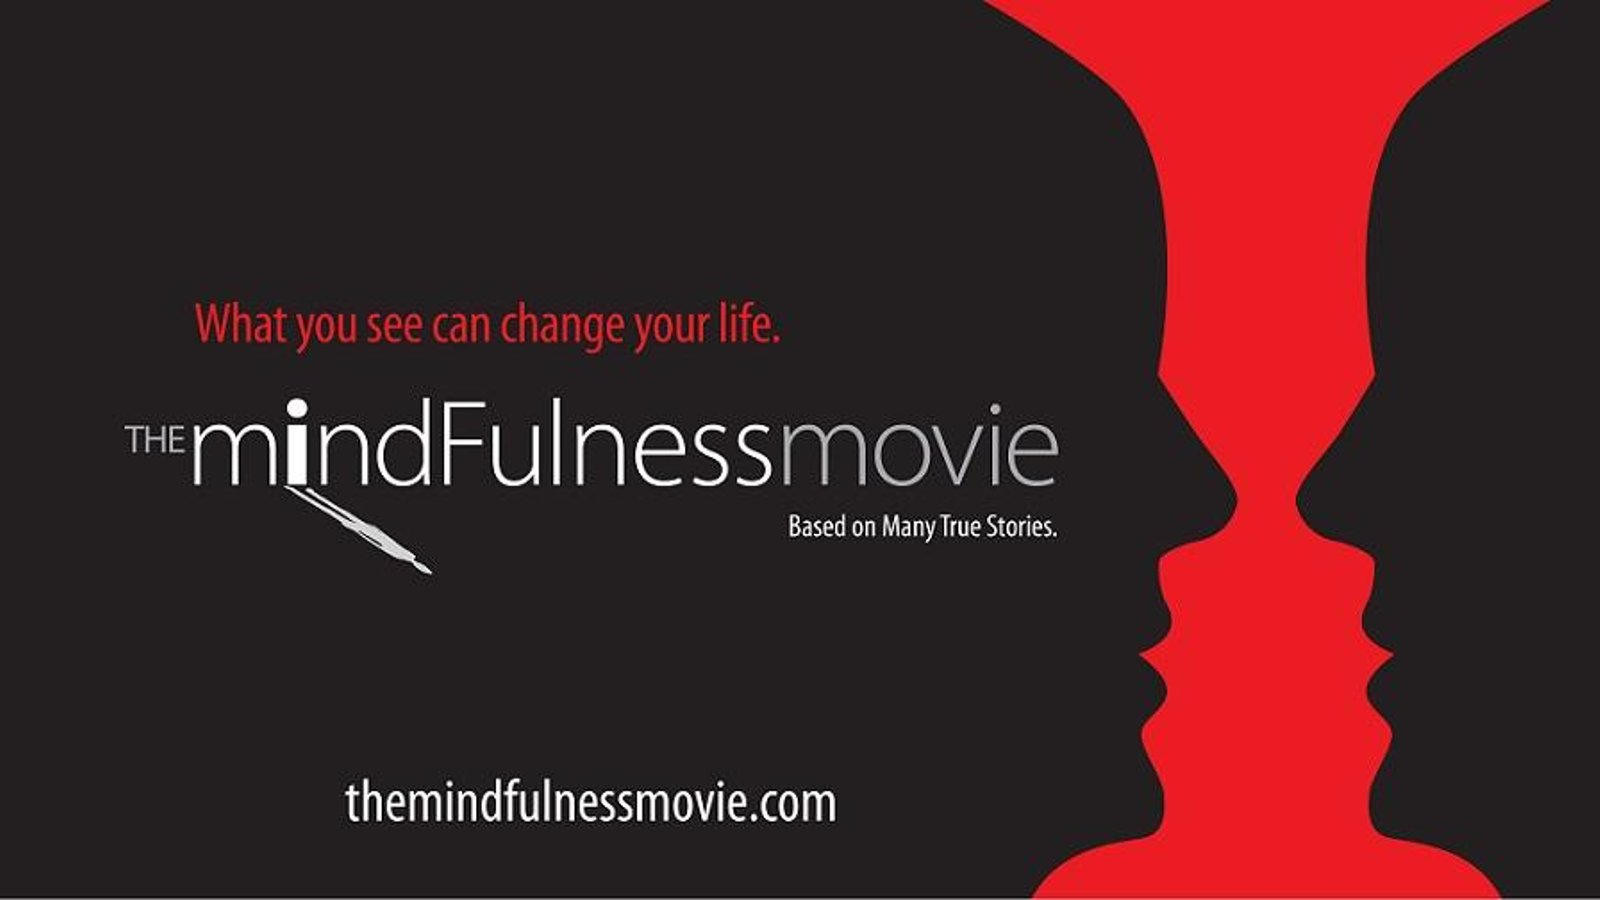 The Mindfulness Movie - The Benefits of Mindfulness